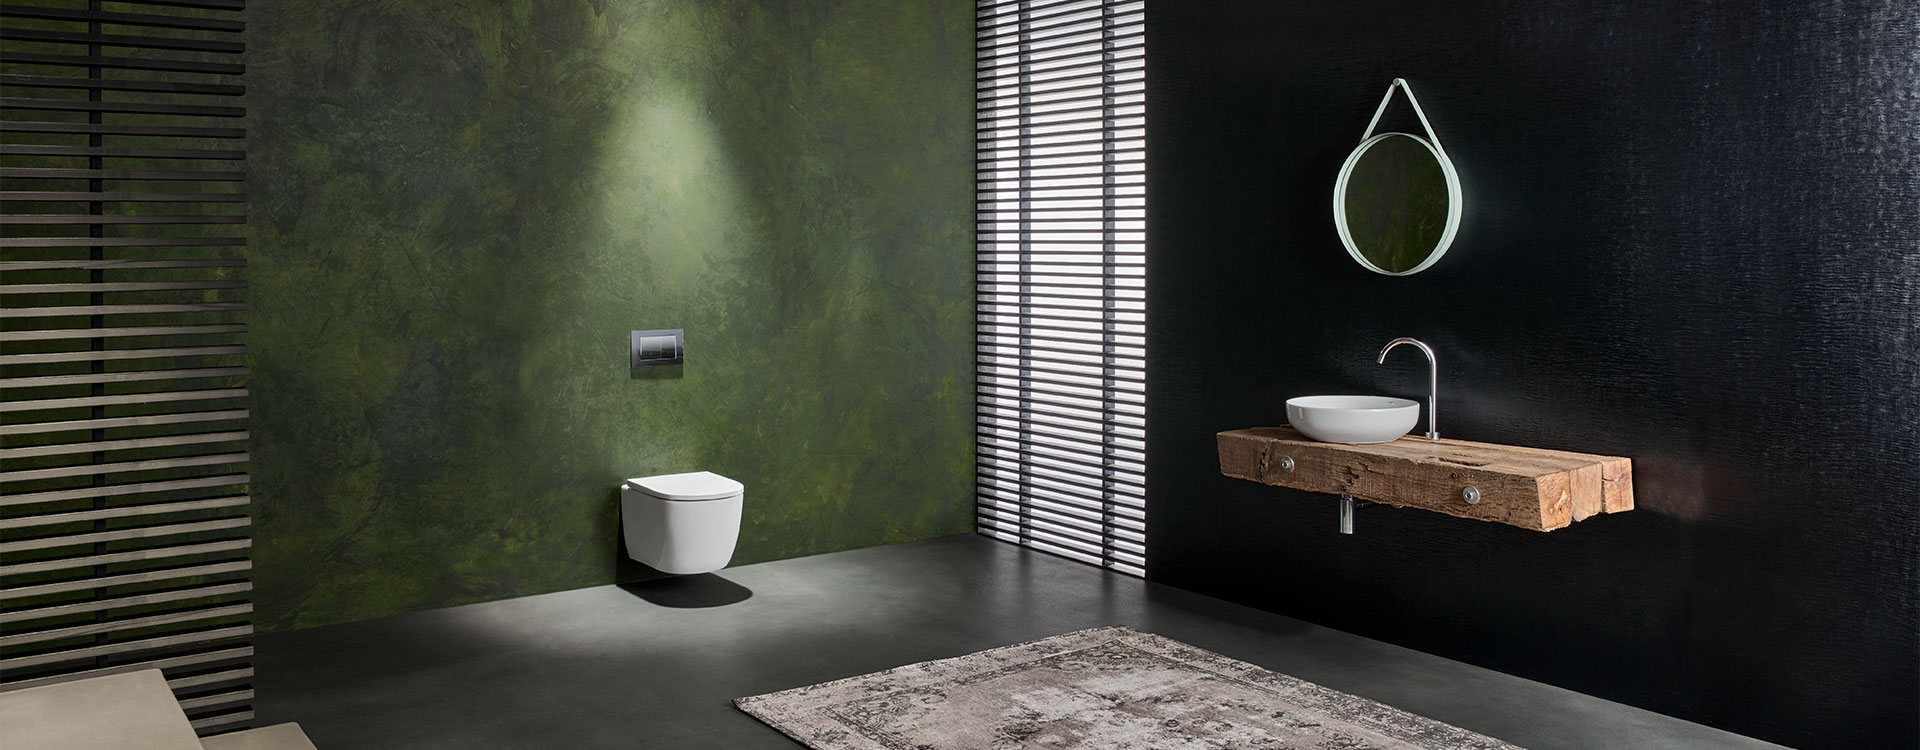 AXENT.ONE C WC   Features